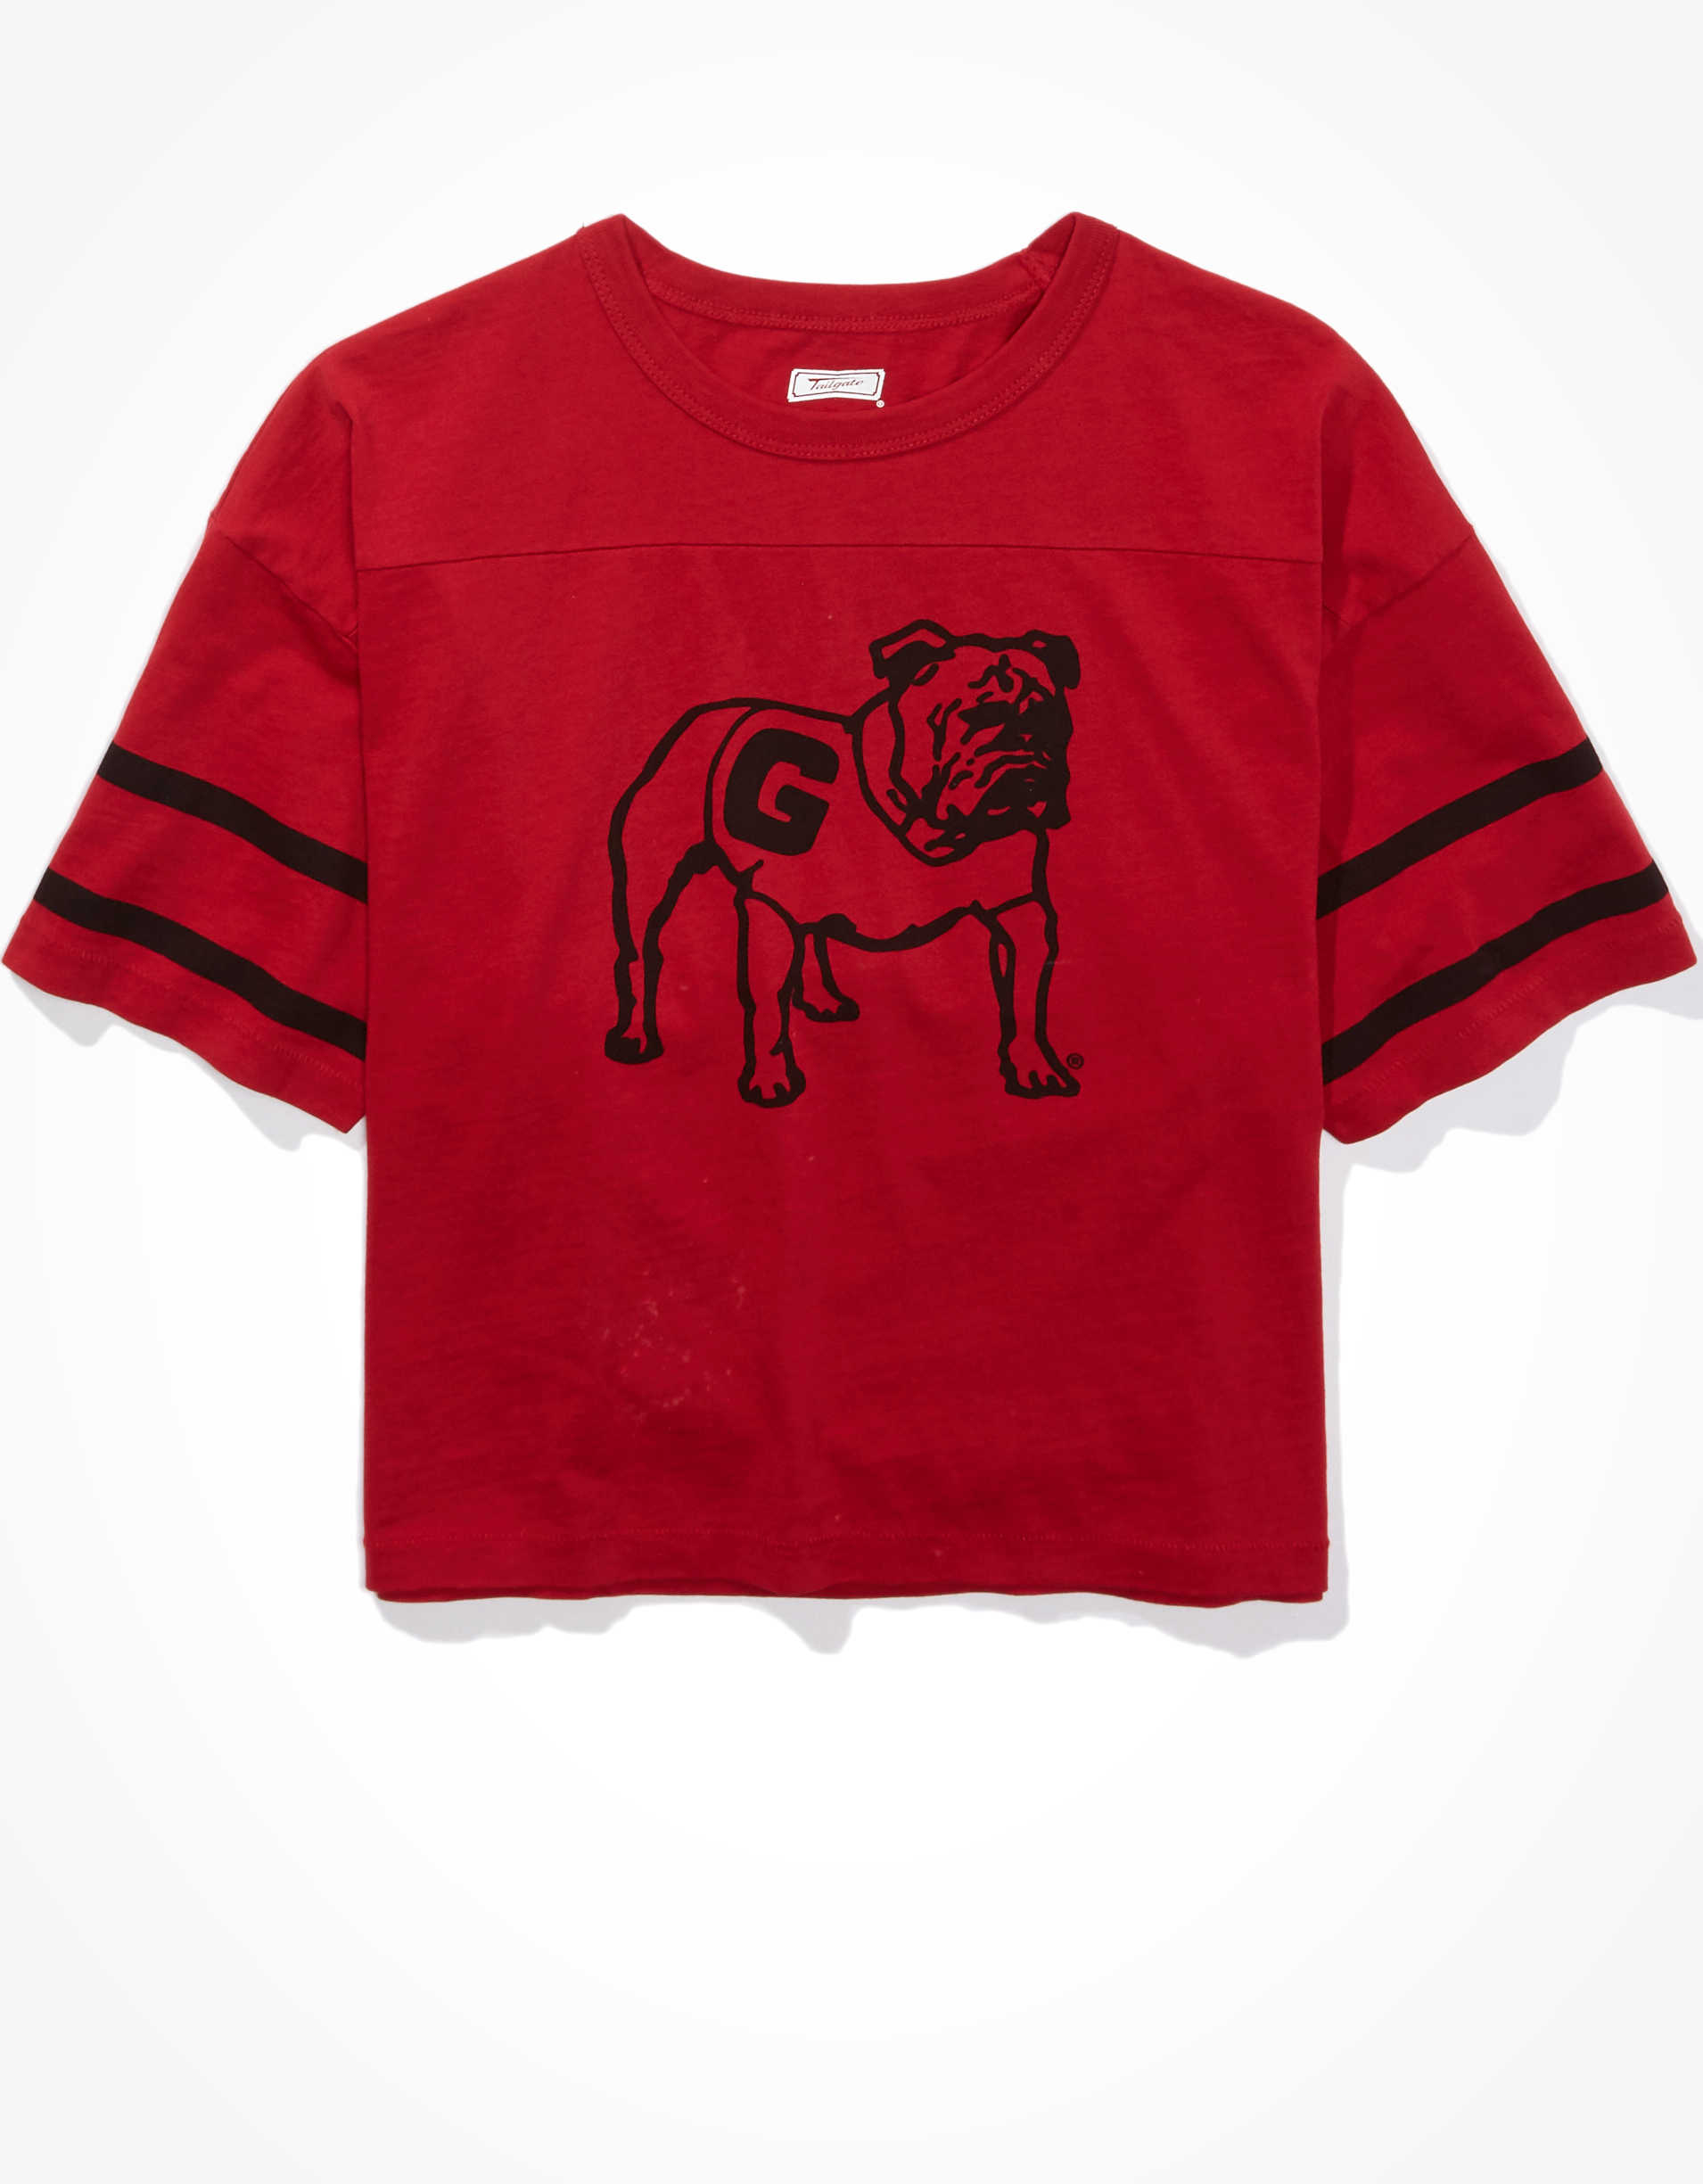 Tailgate Women's Georgia Bulldogs Cropped T-Shirt